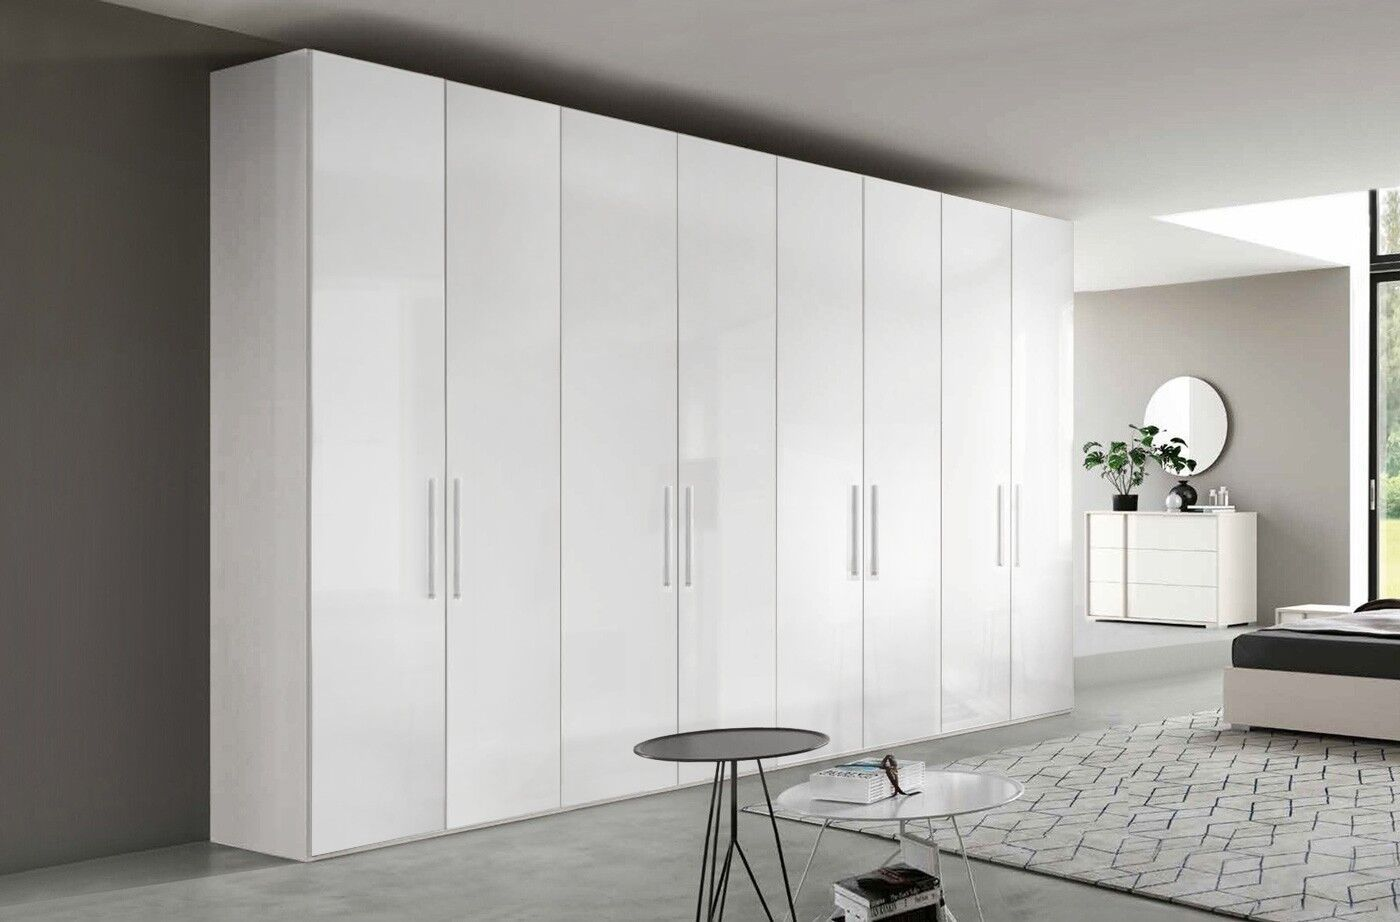 Armadio 8 Ante Ikea.Armadio 8 Ante Battenti Bianco Lucido Https Www Zenzeroshop It Armadio Moderno 8 Ante Battenti Finitura Bianco Tall Cabinet Storage Storage Cabinet Furniture